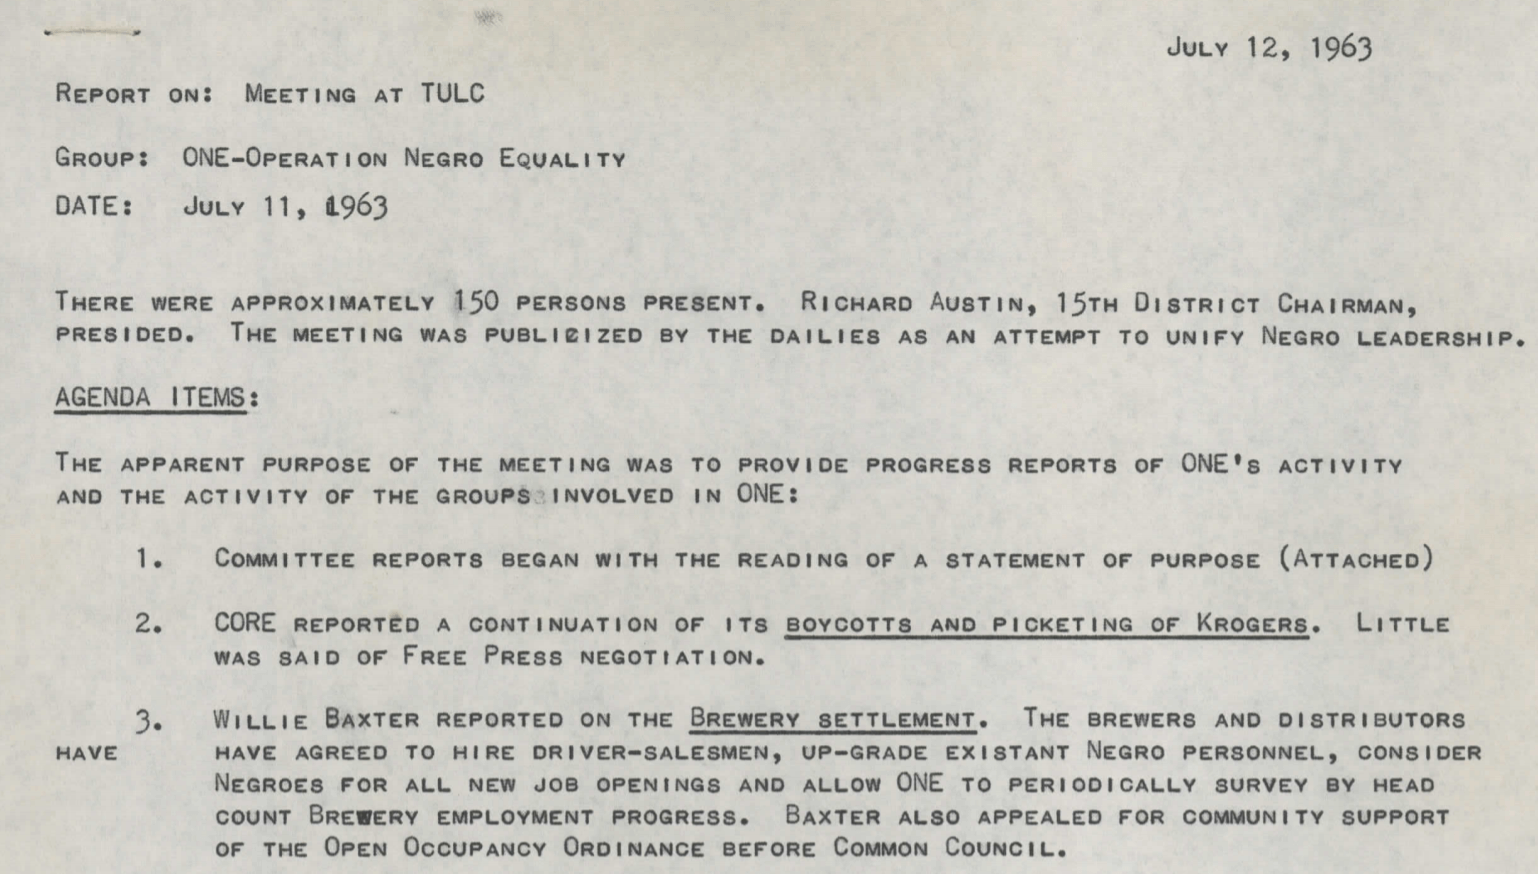 Meeting Minutes, Operation Negro Equality (July 11, 1963)